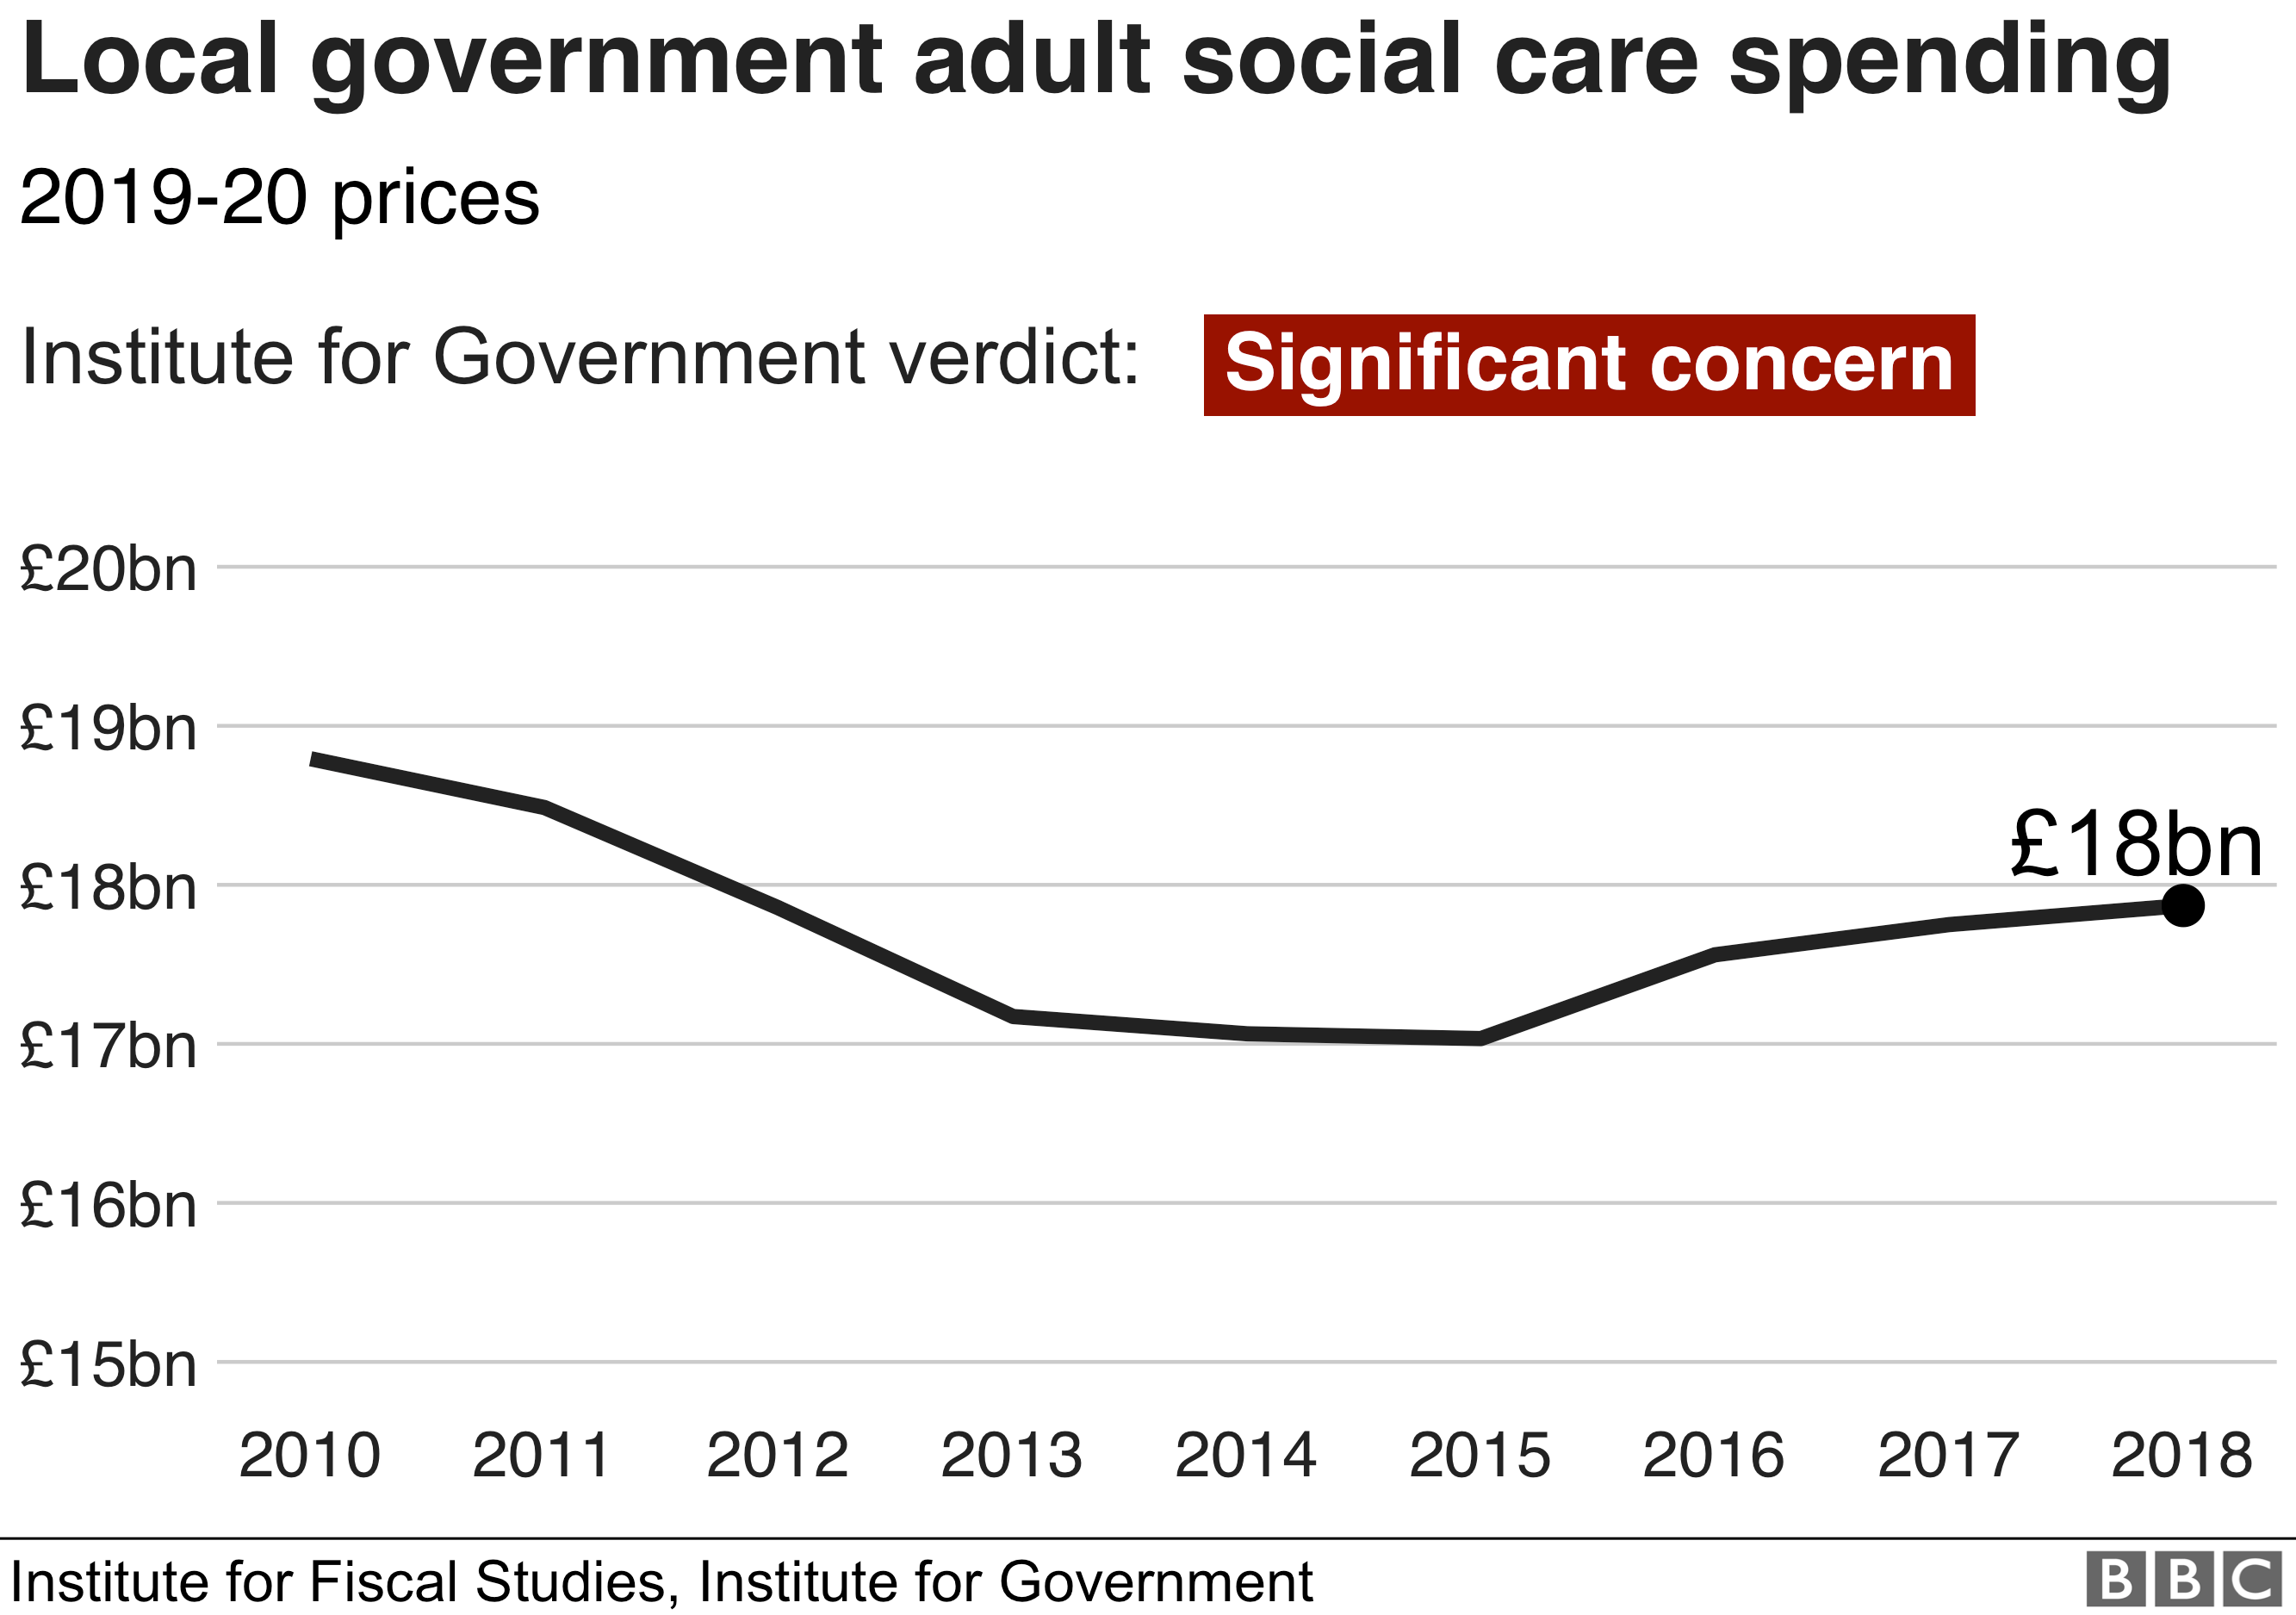 Chart showing spending on adult social care